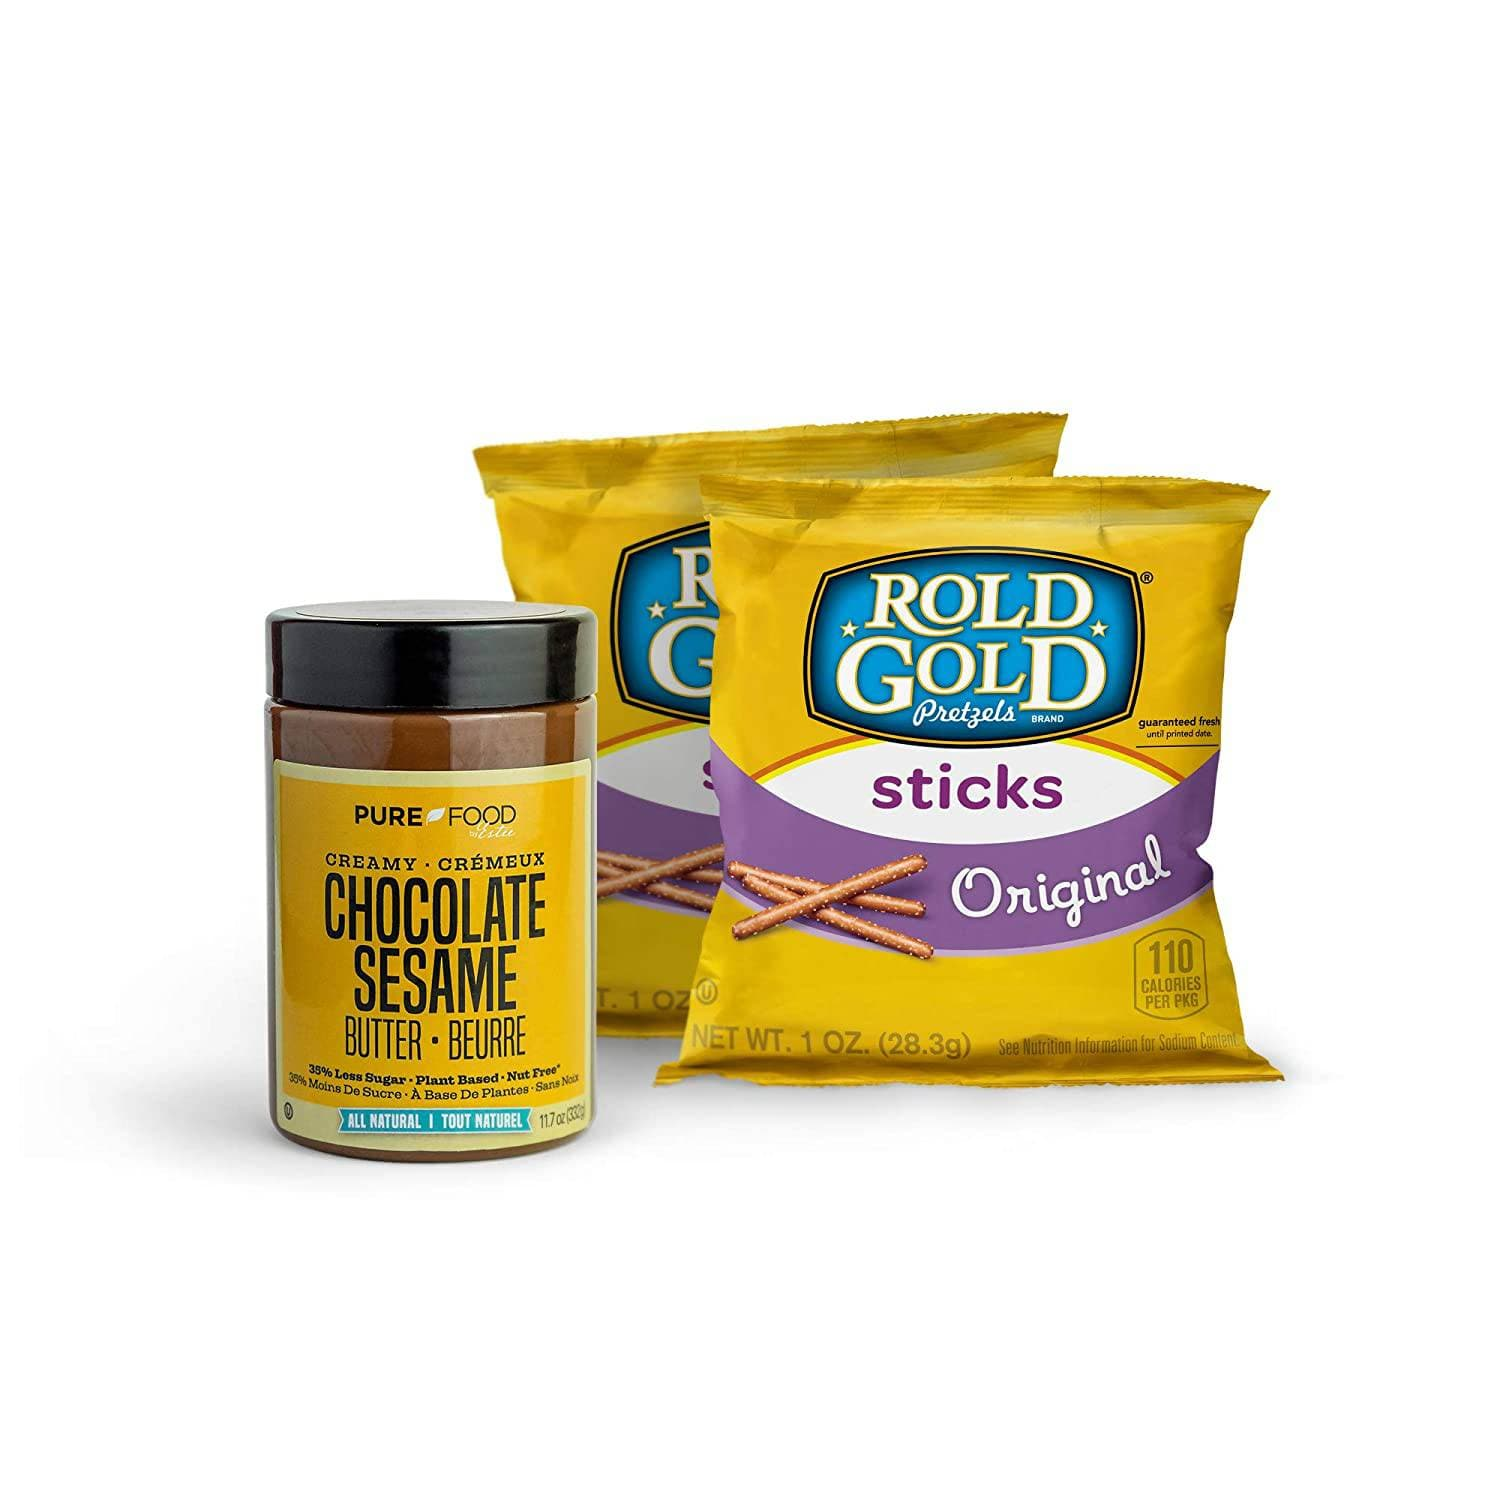 PR Chocolate Sesame Butter + Pretzel Dip Set - Pure Food by Estee